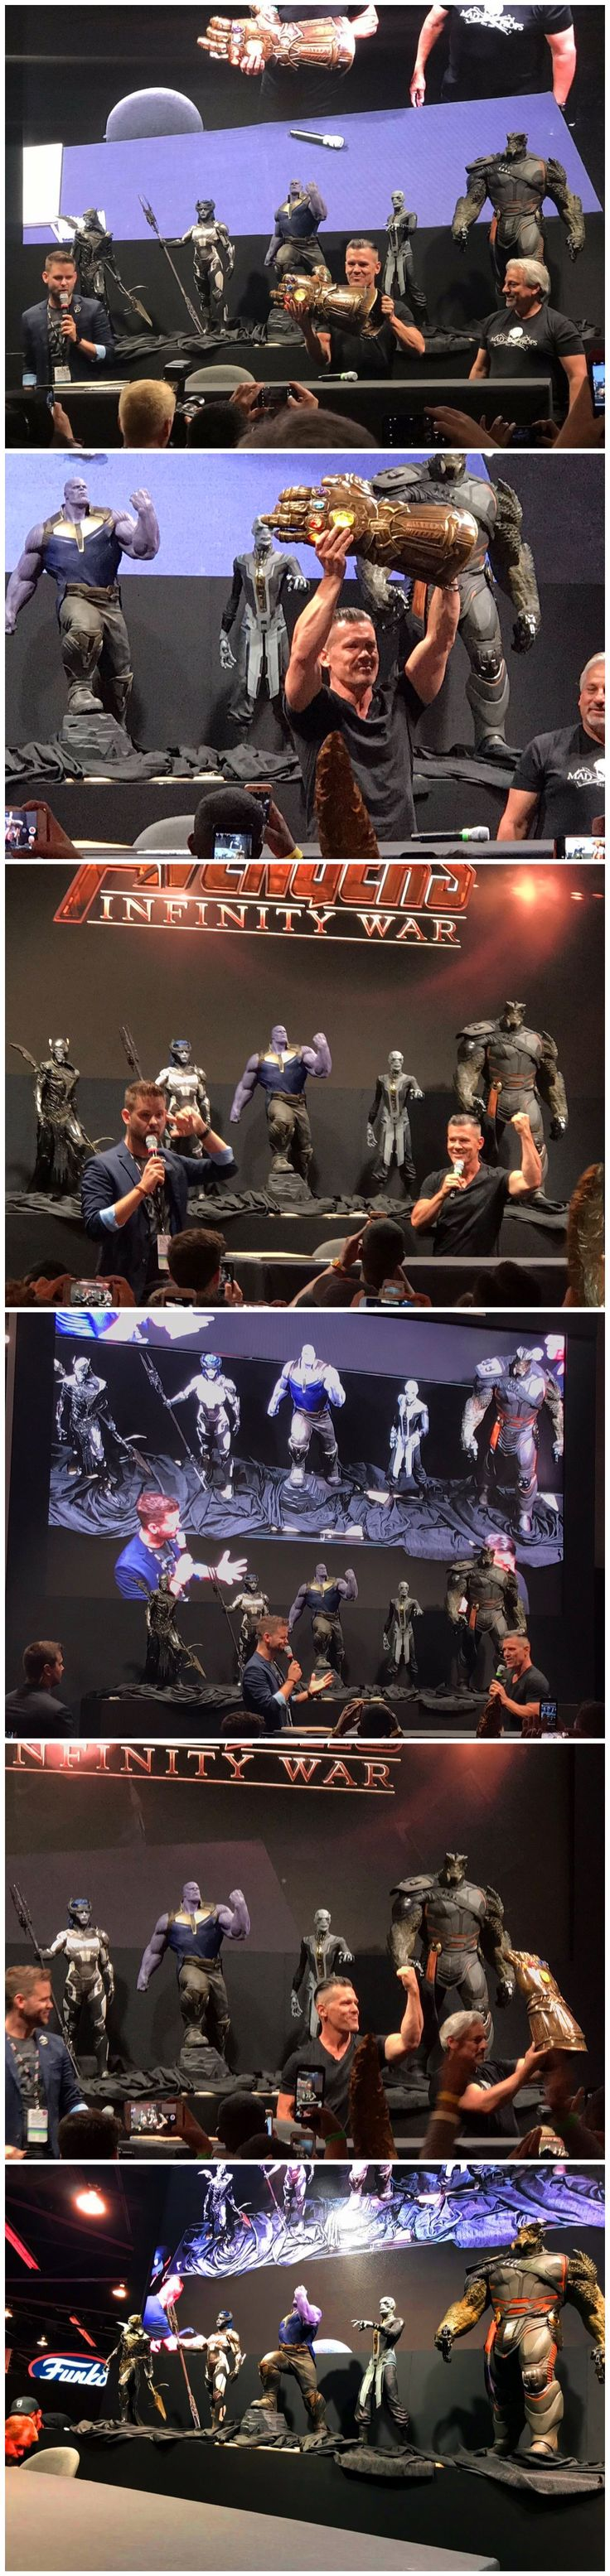 THE BLACK ORDER REVEALED FOR 'AVENGERS: INFINITY WAR'!The statues that have been covered all weekend at D23 have finally be unveiled and revealed the first look at Thanos' team of Generals - The Black Order. From the left there is Corvus Glaive, Proxima Midnight, Thanos, Ebony Maw, and Black Dwarf!